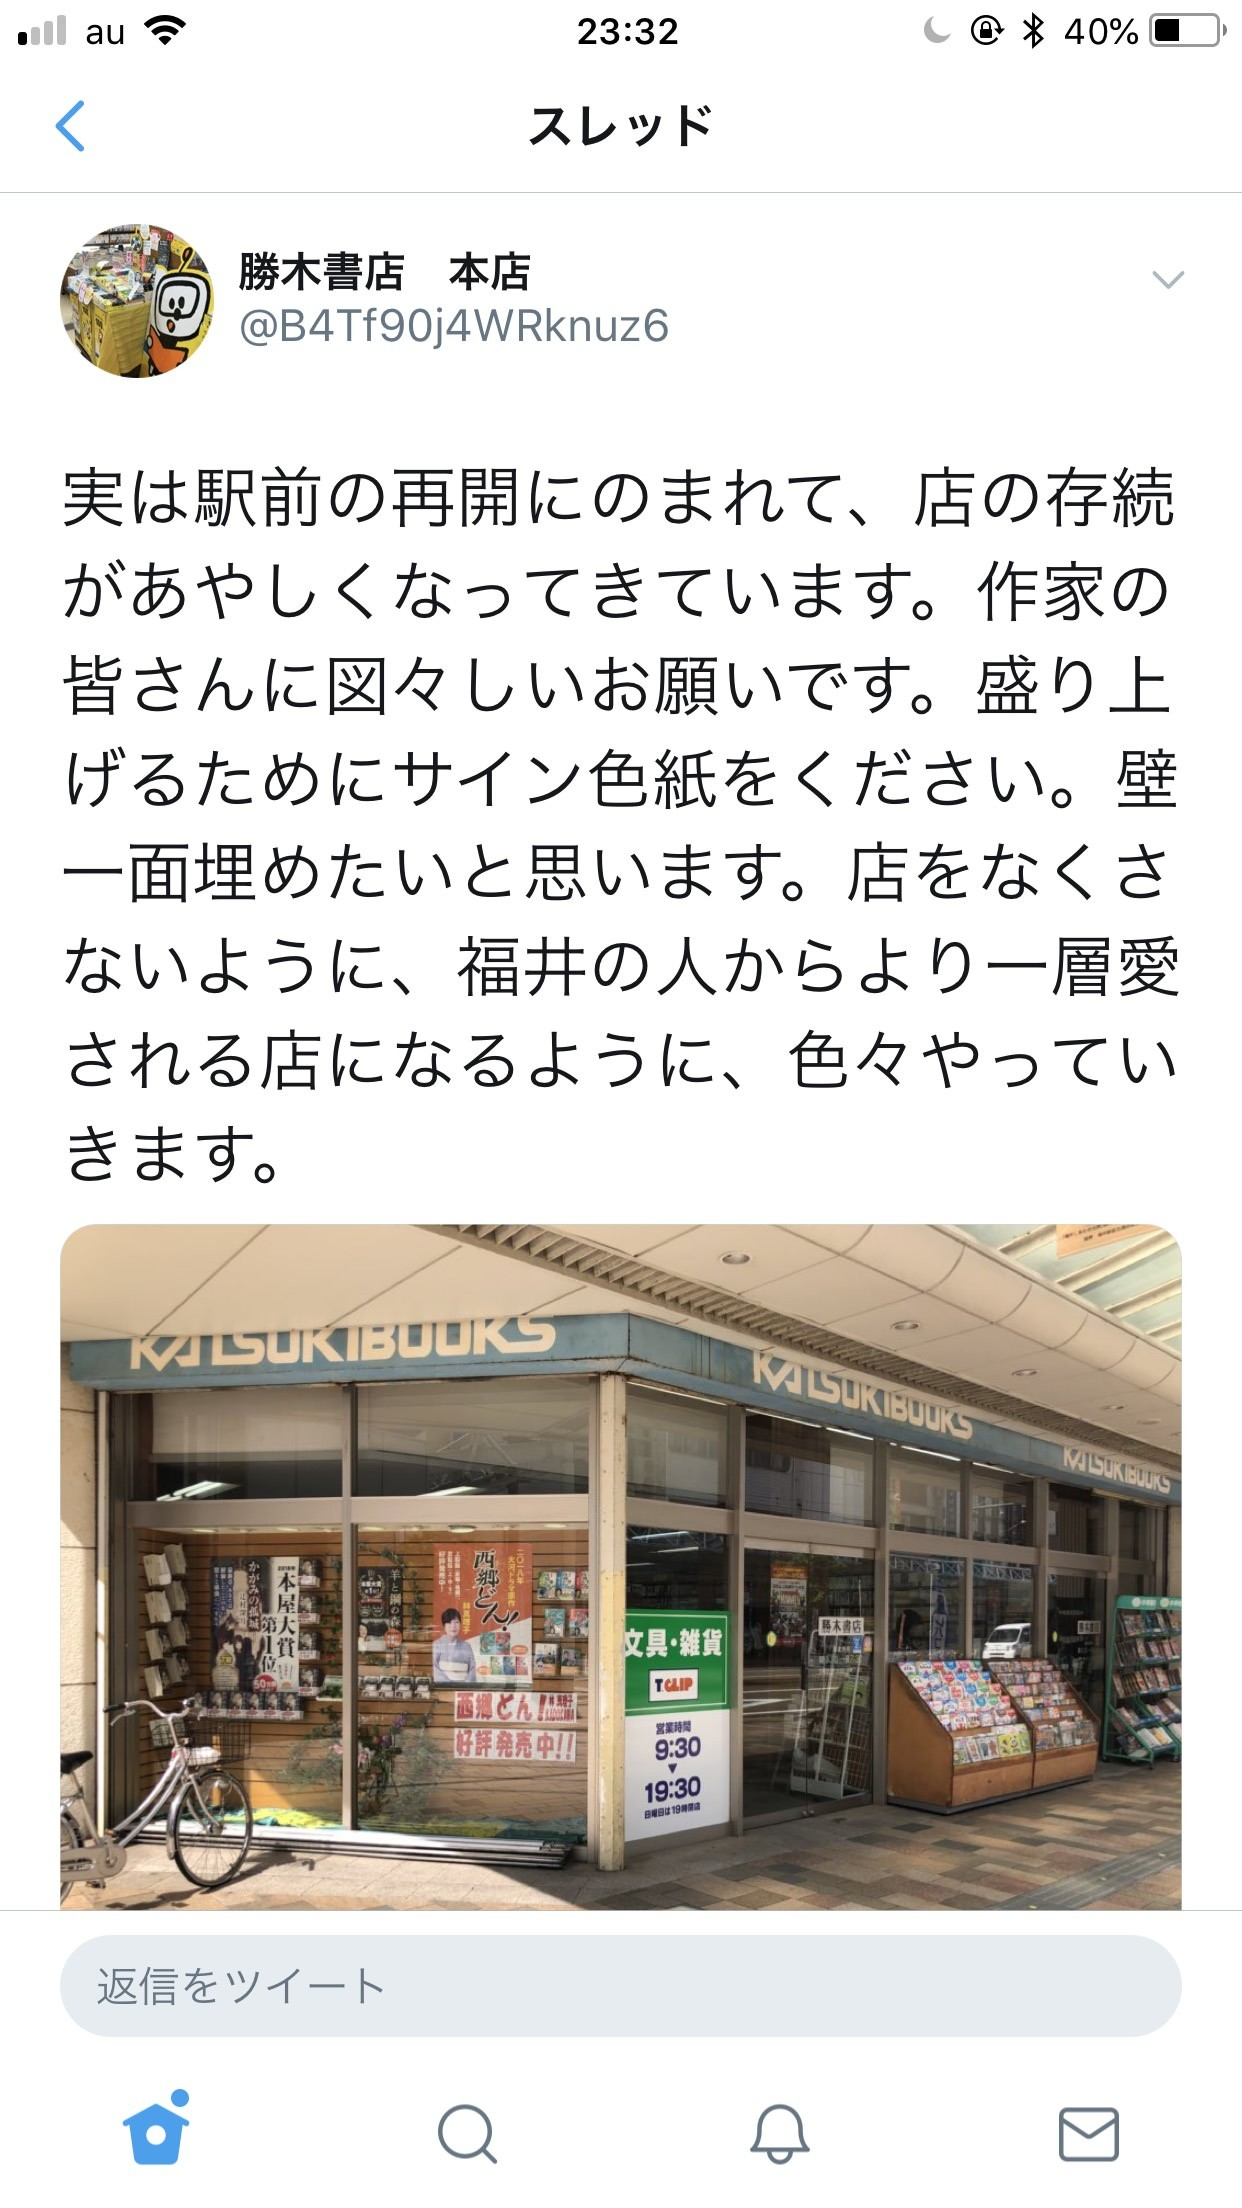 """A bookstore in the city """"Everyone of the writers, please send us a signature paper at no cost to our shop, will you crush?"""""""